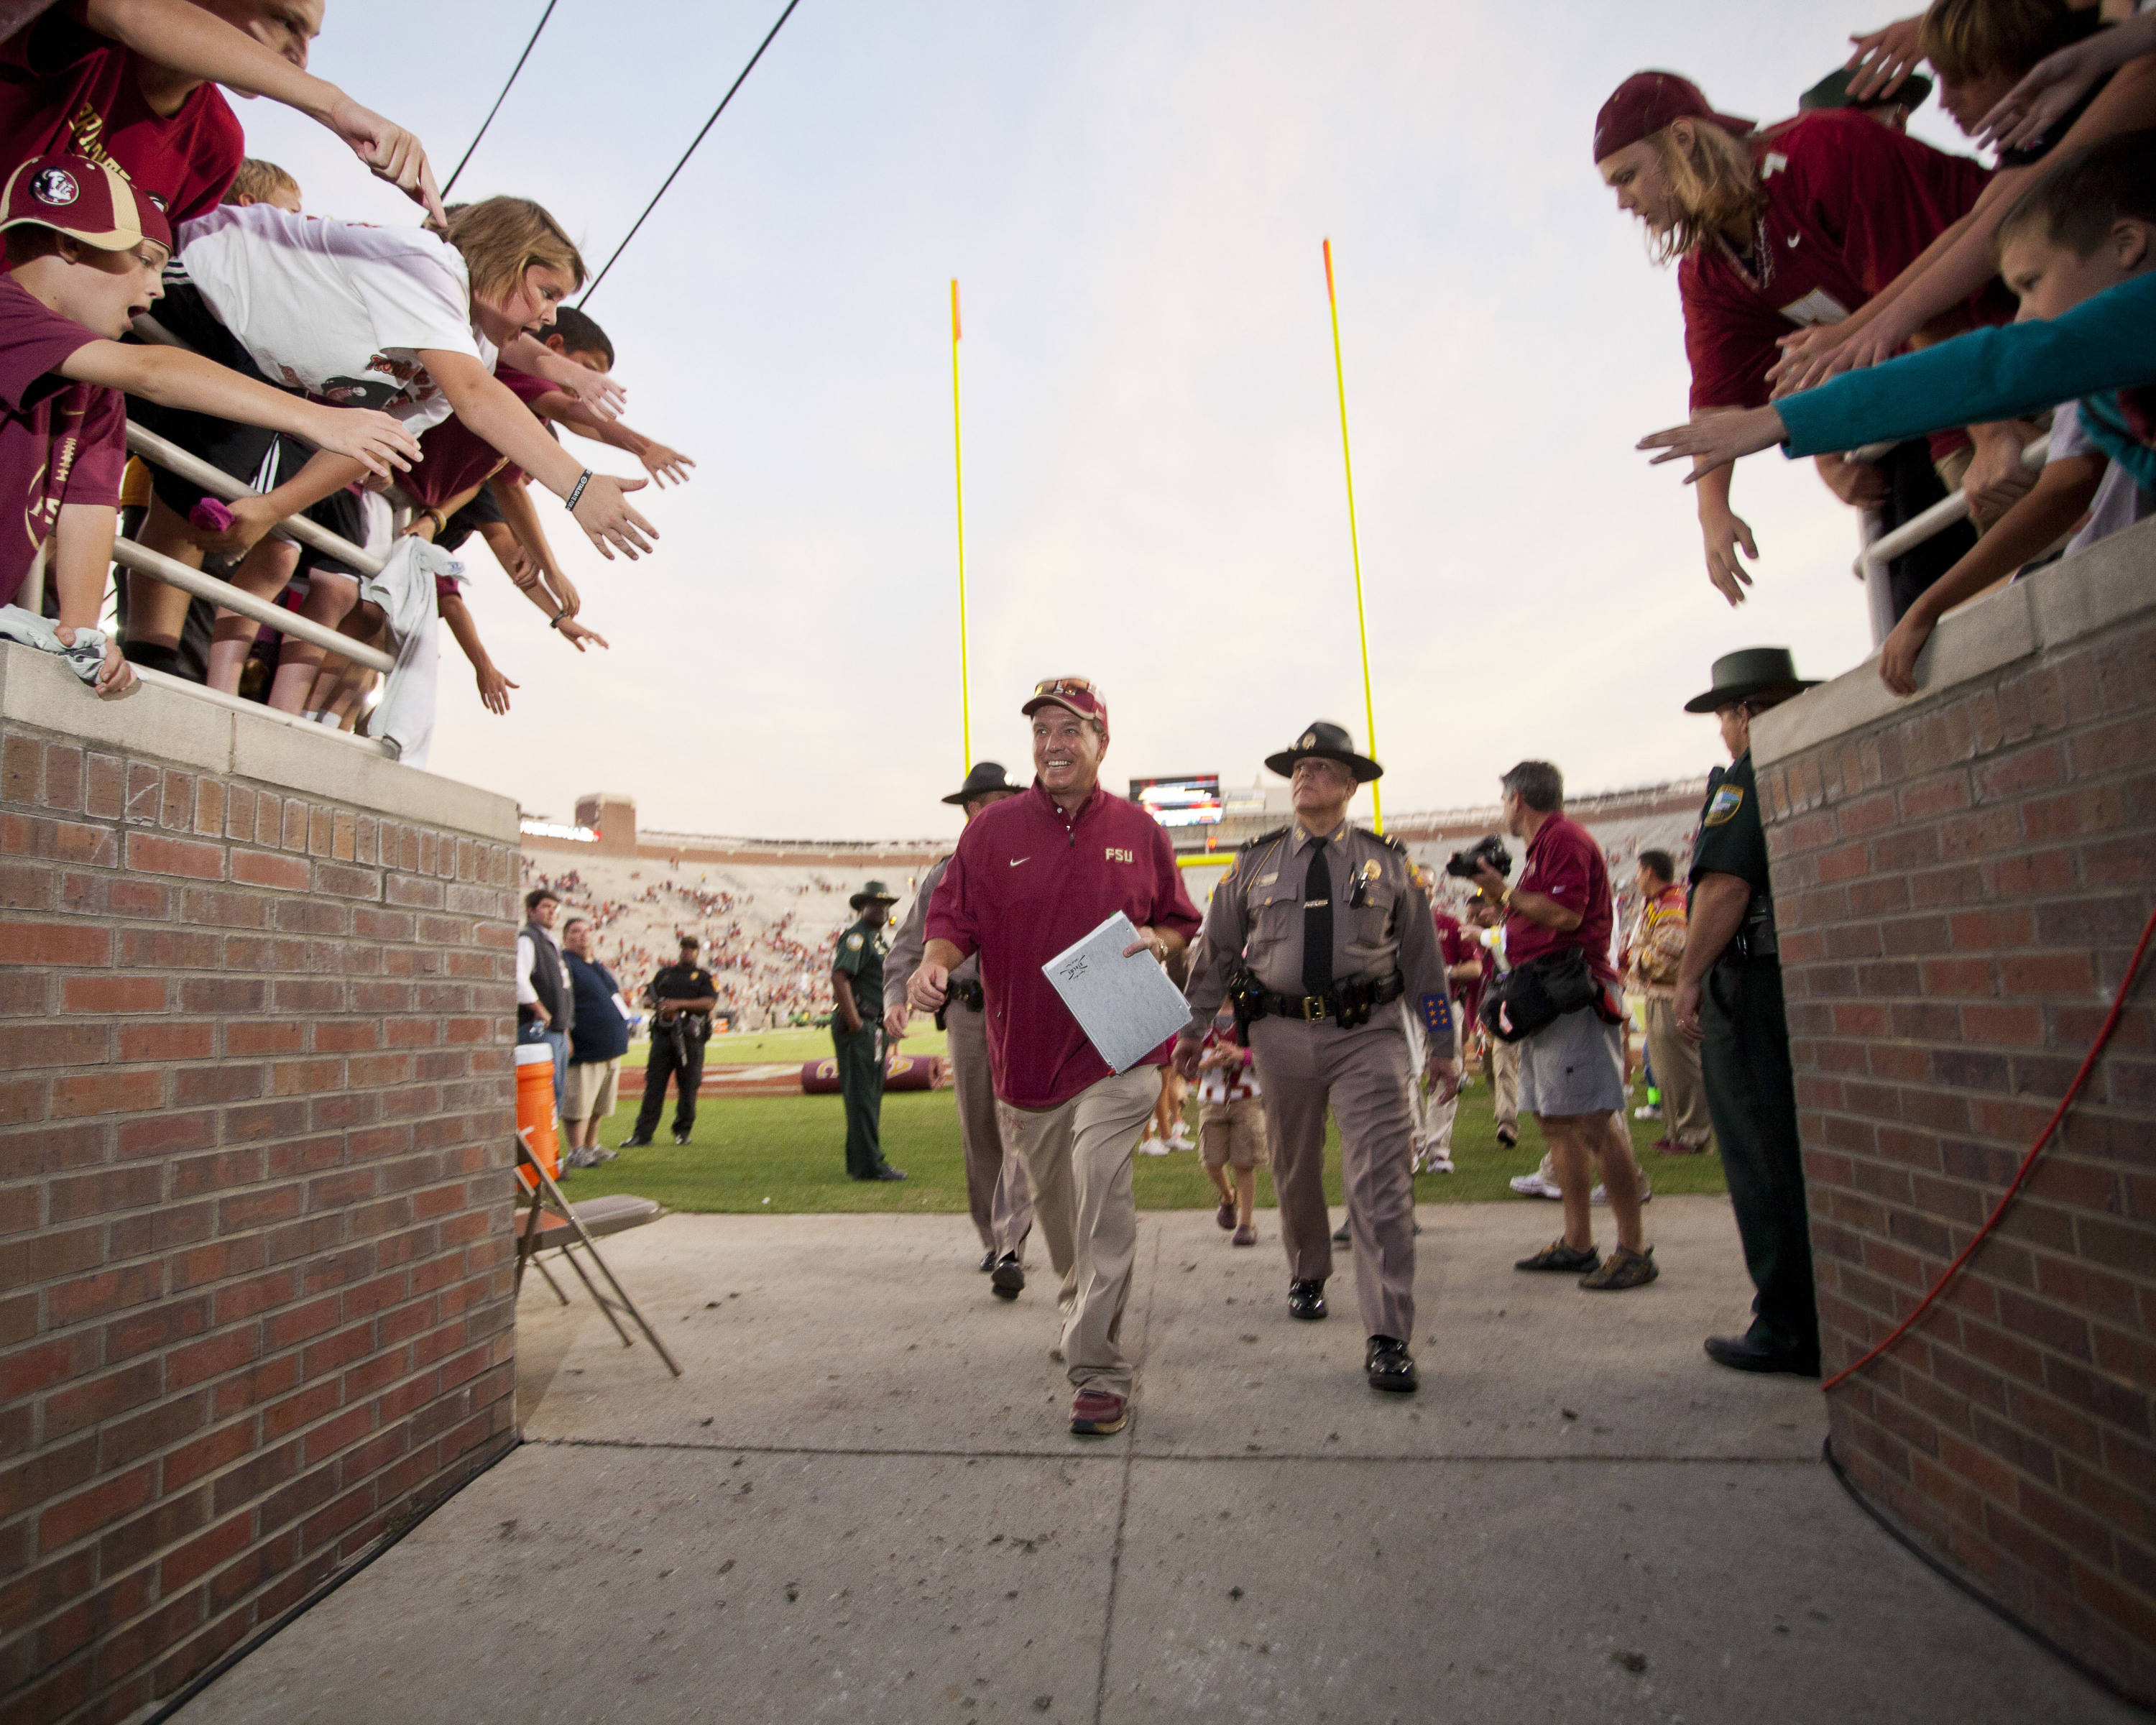 Jimbo Fisher walks off the field after FSU's 48-7 victory over Duke on October 27, 2012 in Tallahassee, Fla.